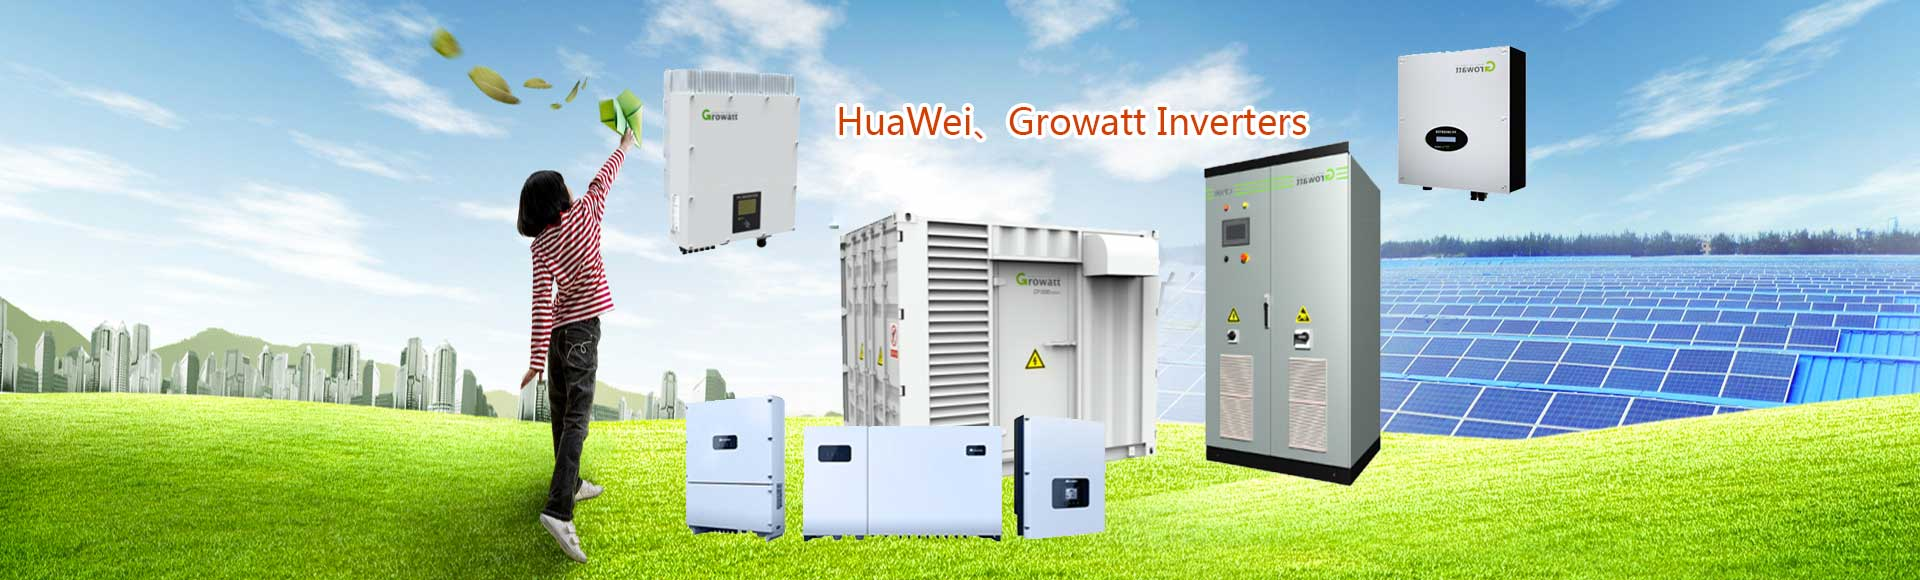 HuaWei,Growatt Inverters